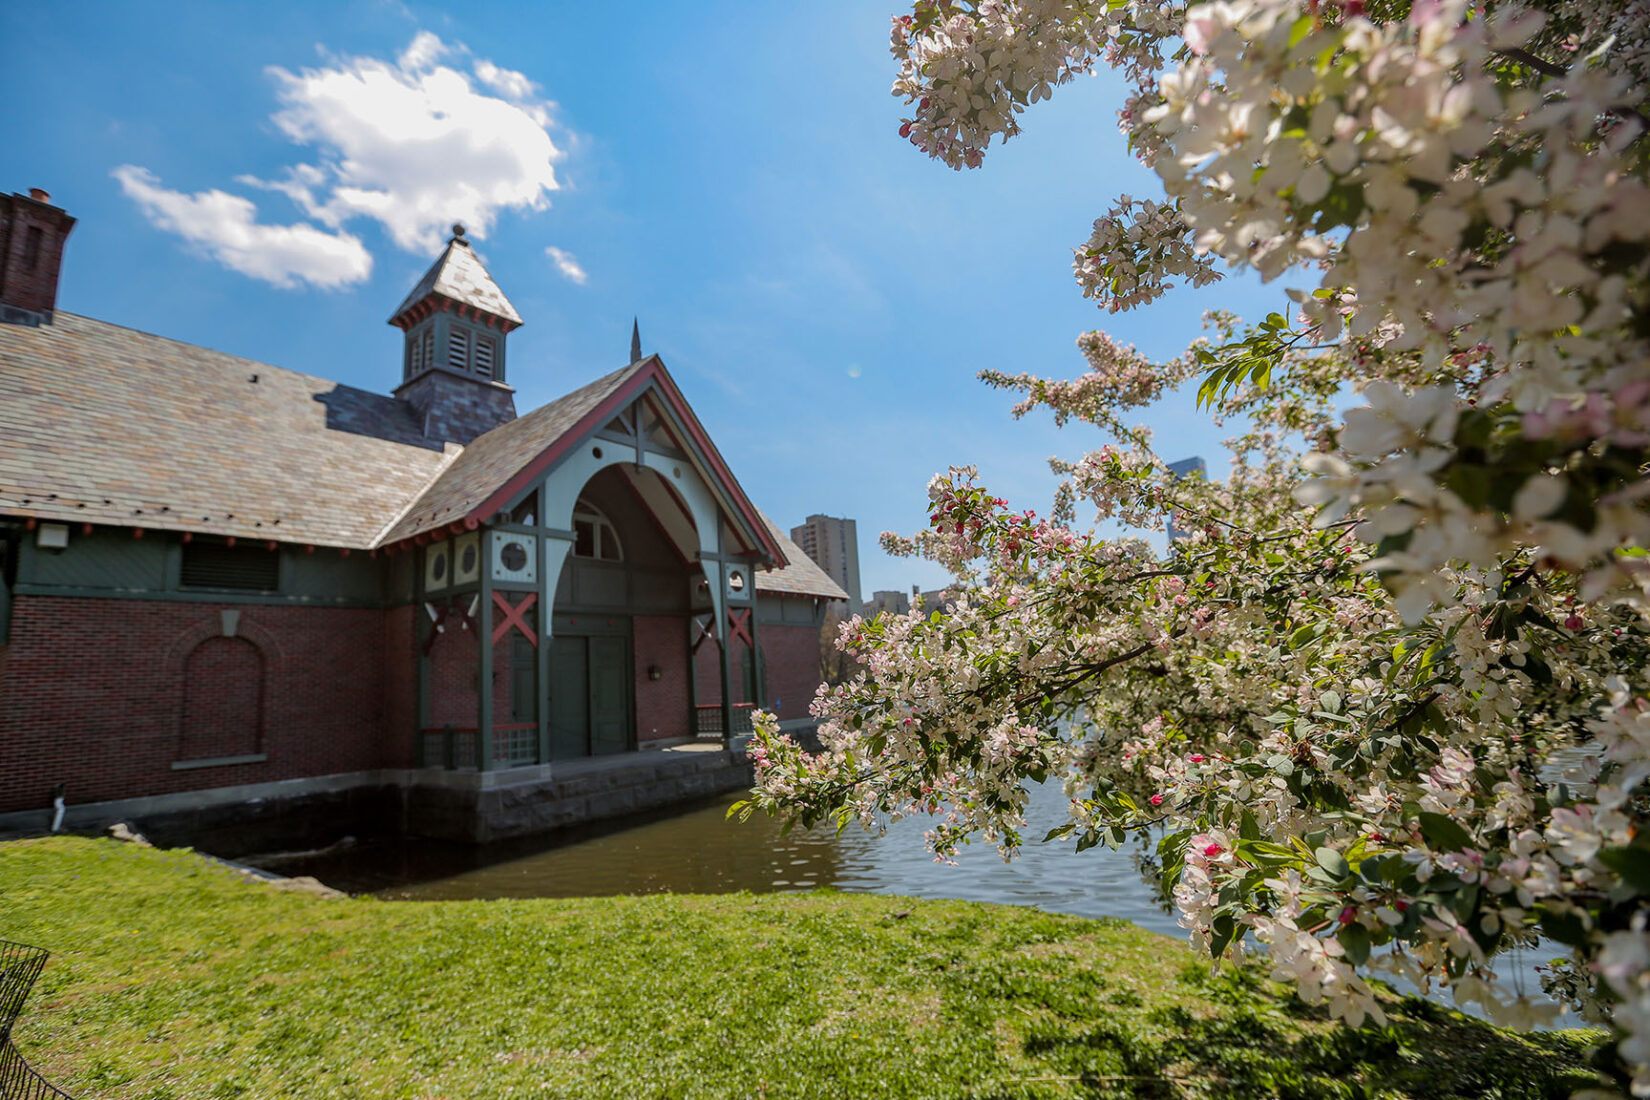 The Dana Discovery Center is pictured on the banks of the Harlem Meer under a blue sky, framed on one side by a blooming tree